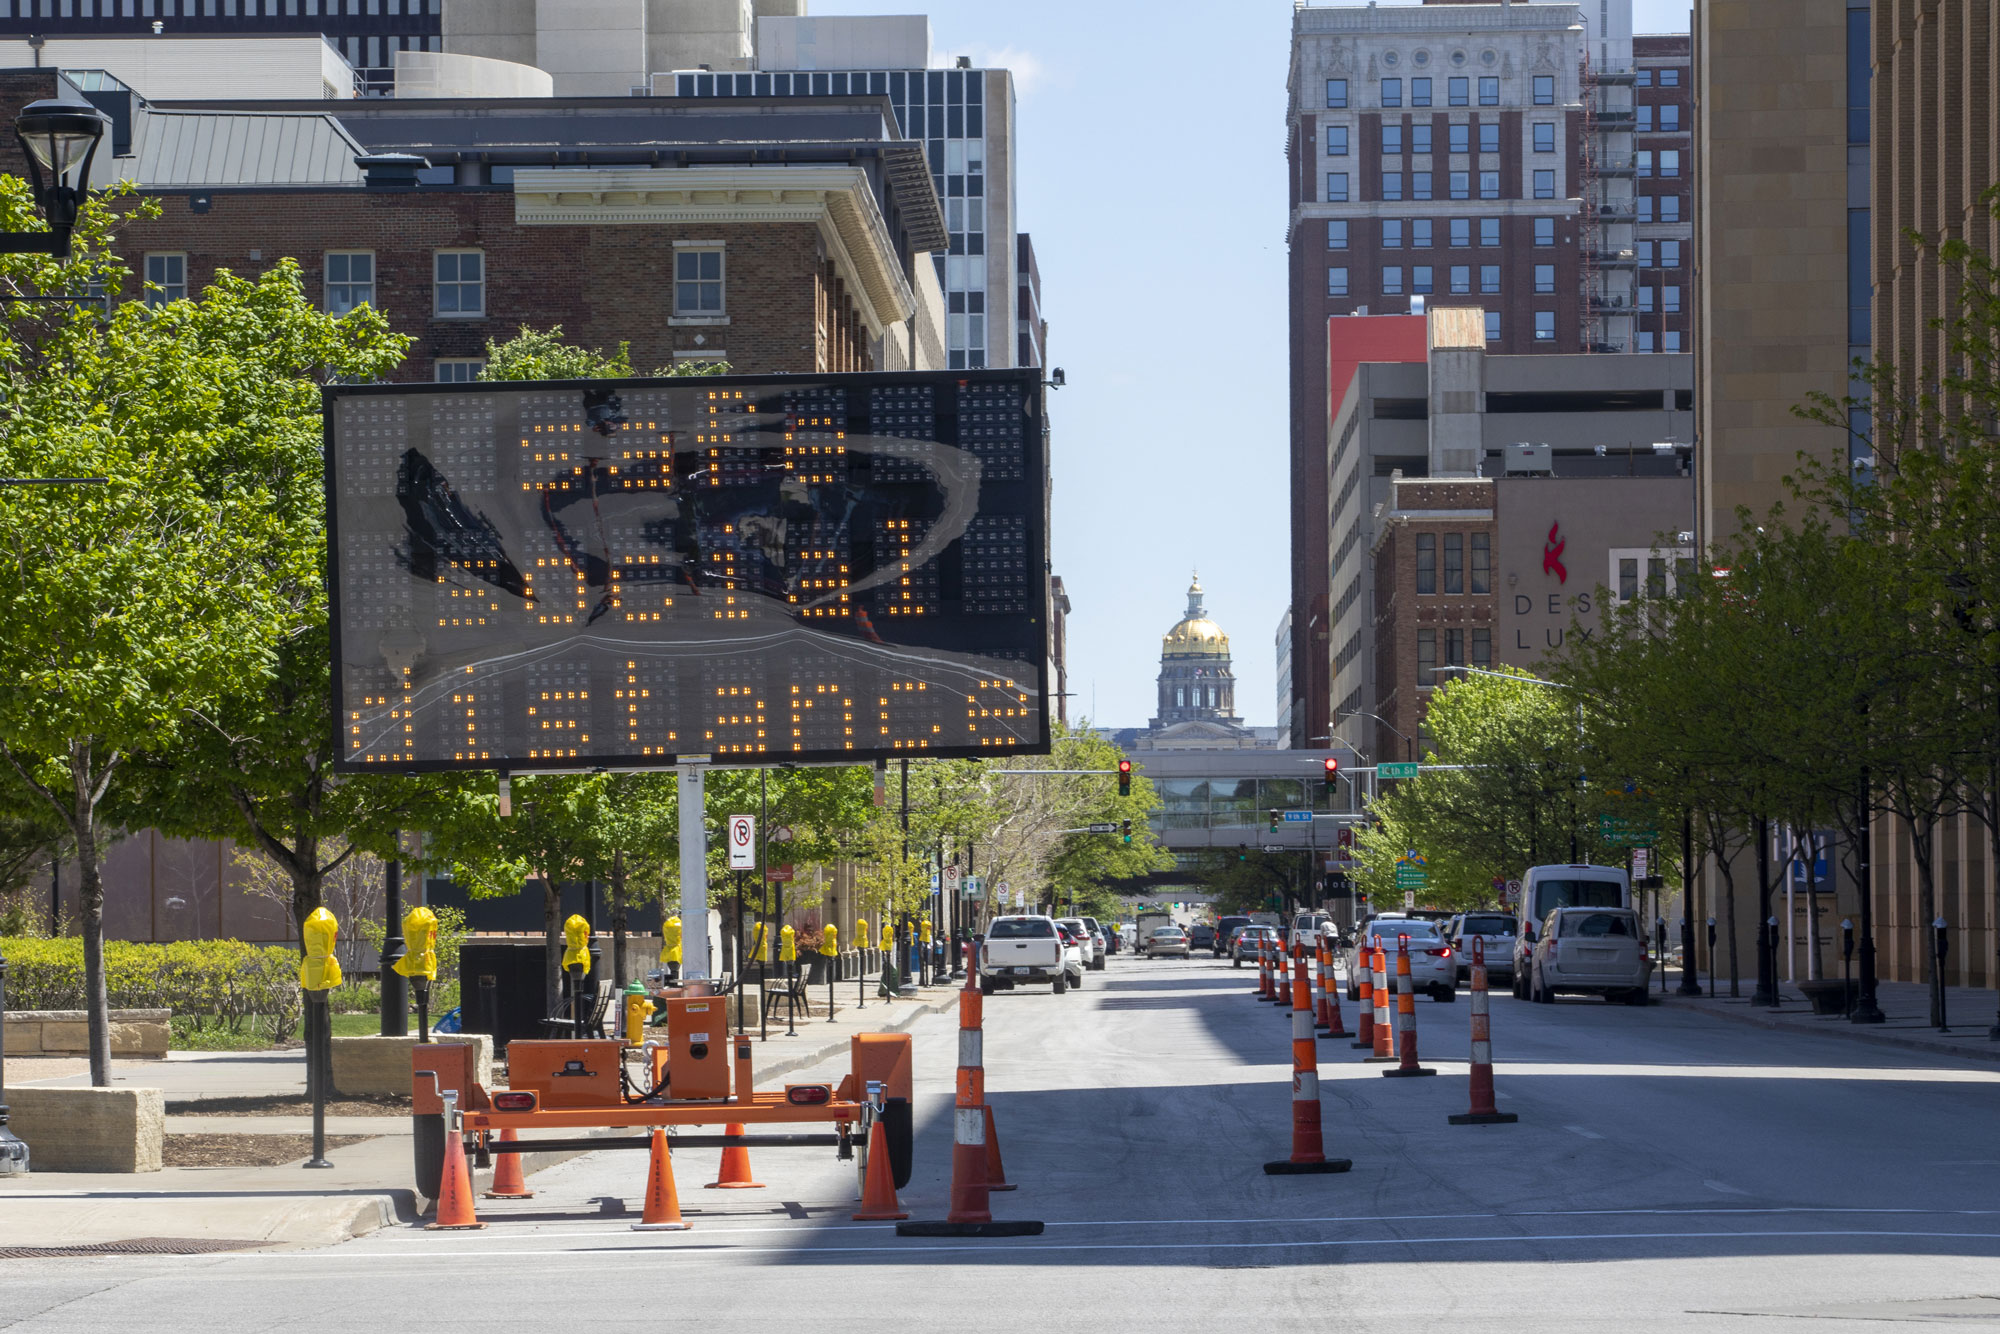 A sign promotes social distancing in downtown Des Moines, Iowa, on May 8.